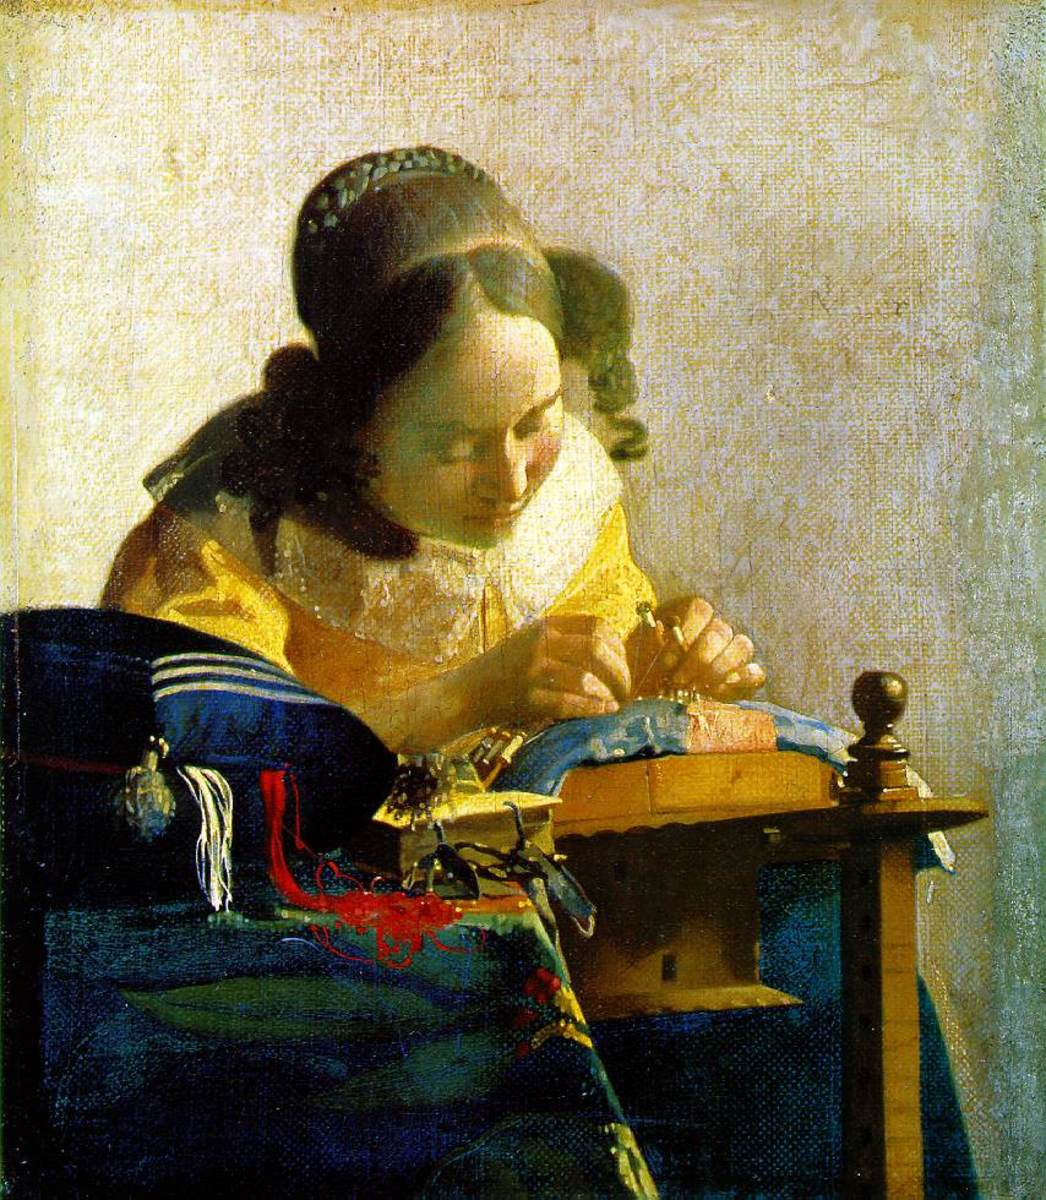 The Lacemaker, Jan Vermeer, painted 1669-70. The Louvre, Paris.